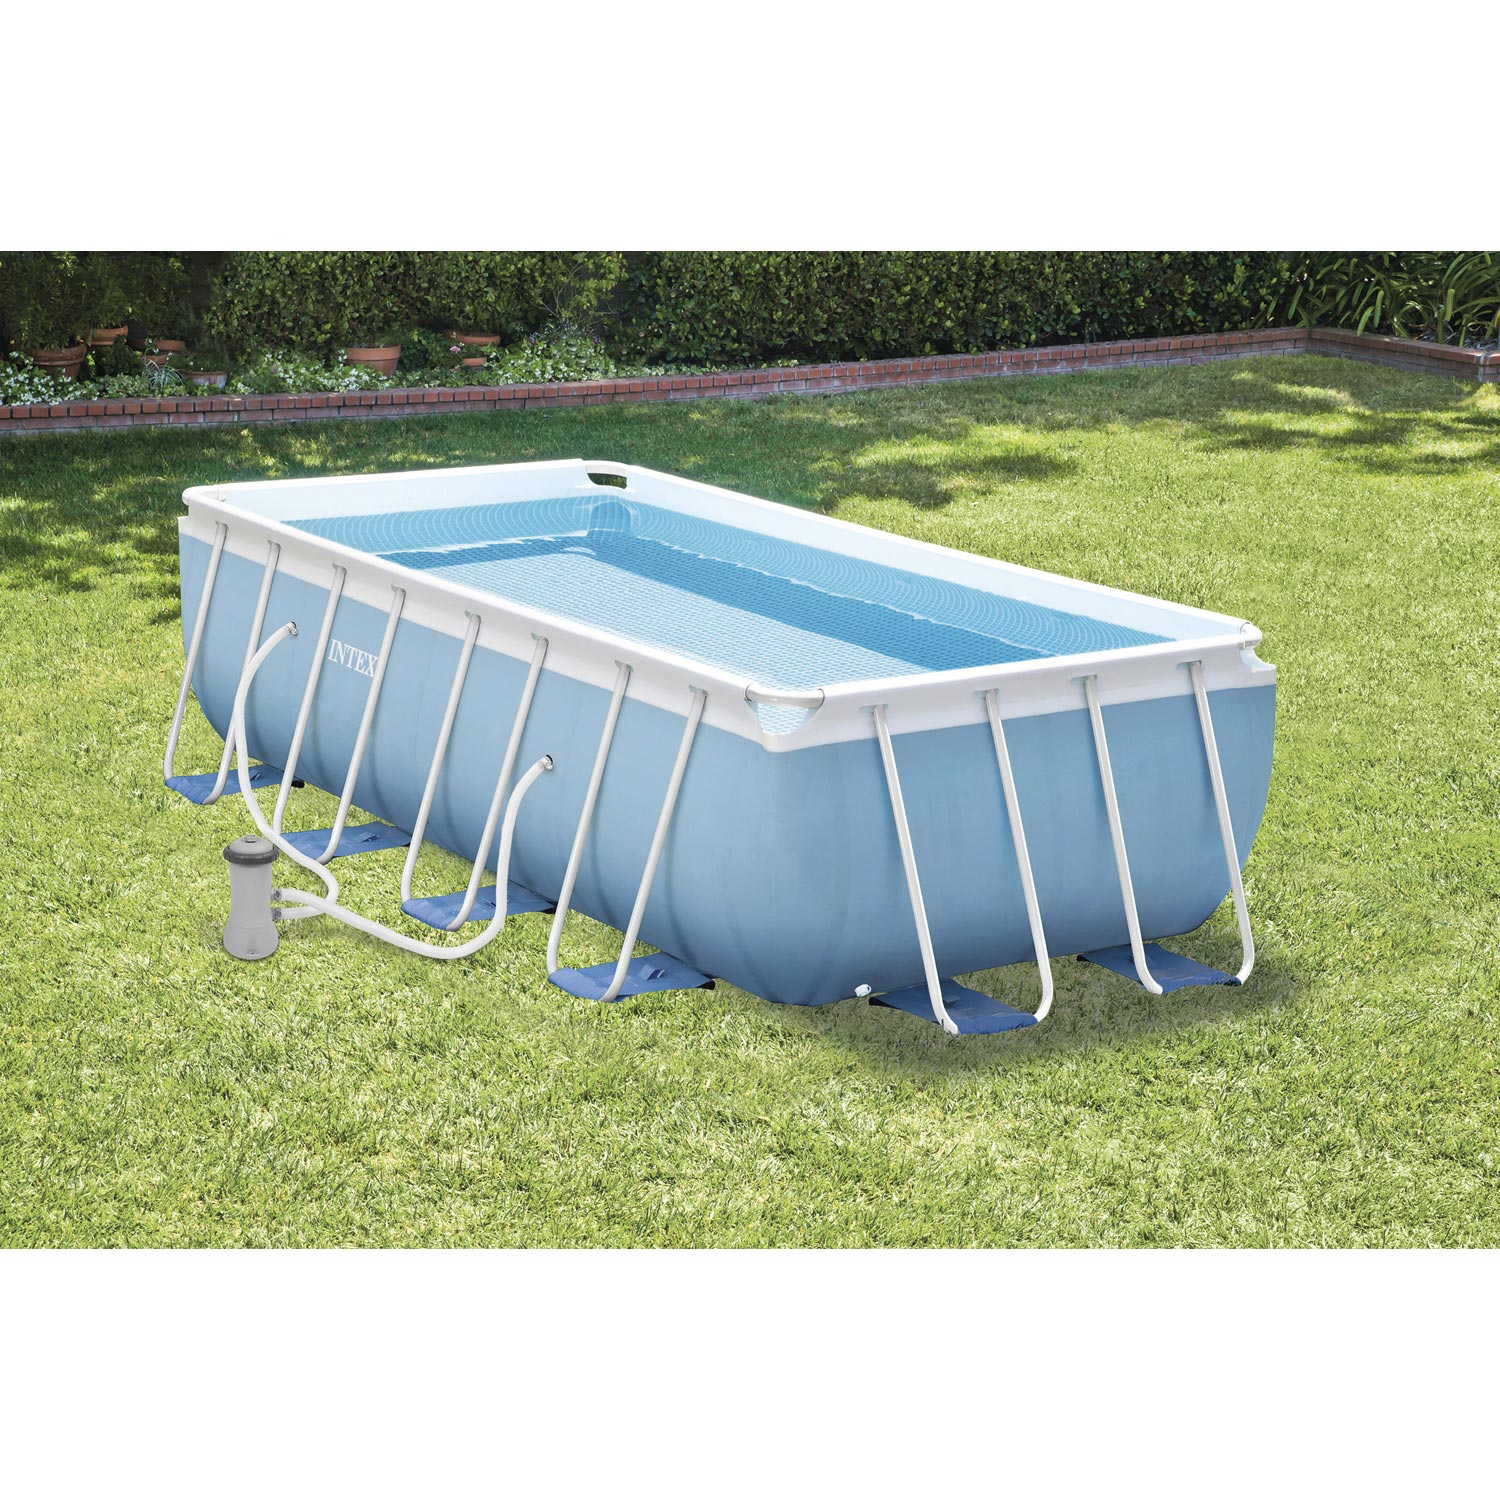 Piscine hors sol autoportante tubulaire prism frame intex for Sevylor piscine hors sol